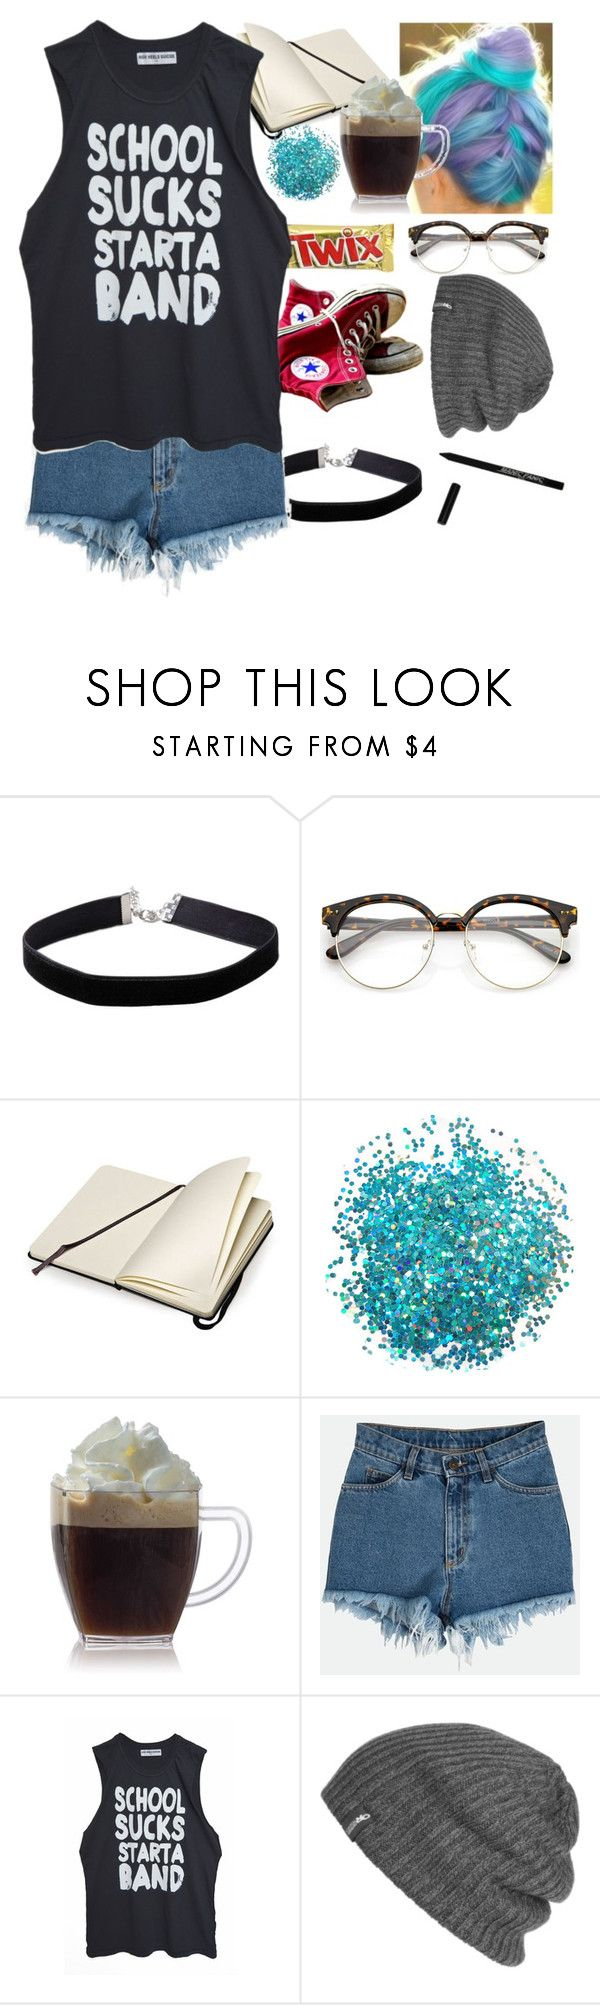 """4 years"" by infizity ❤ liked on Polyvore featuring Miss Selfridge, Sanders, Converse, Moleskine, Outdoor Research and Manic Panic NYC"